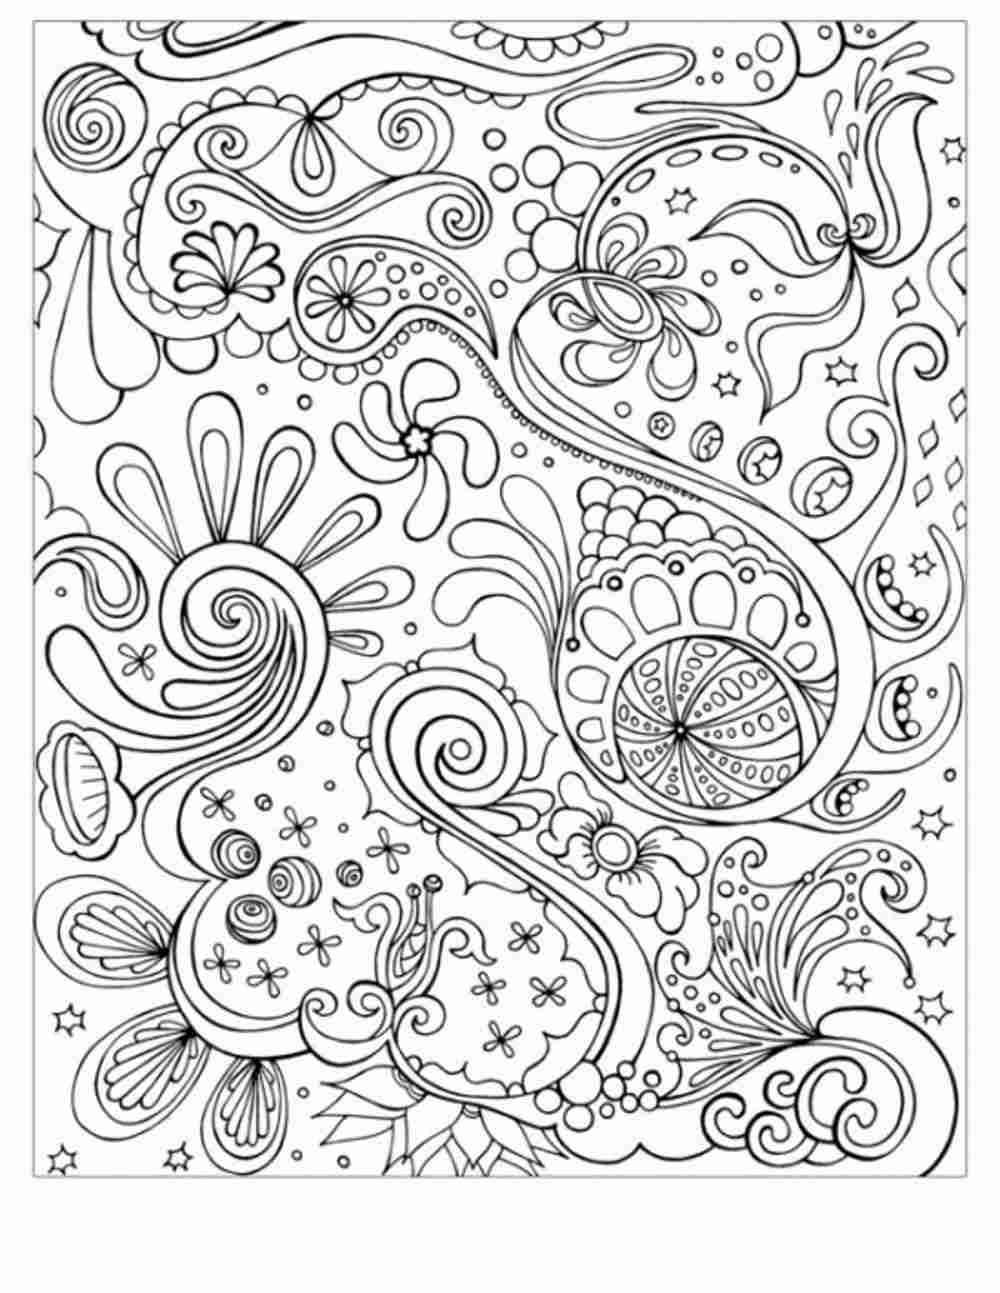 Coloring Pages Abstract Art Printable at GetDrawings.com | Free for ...